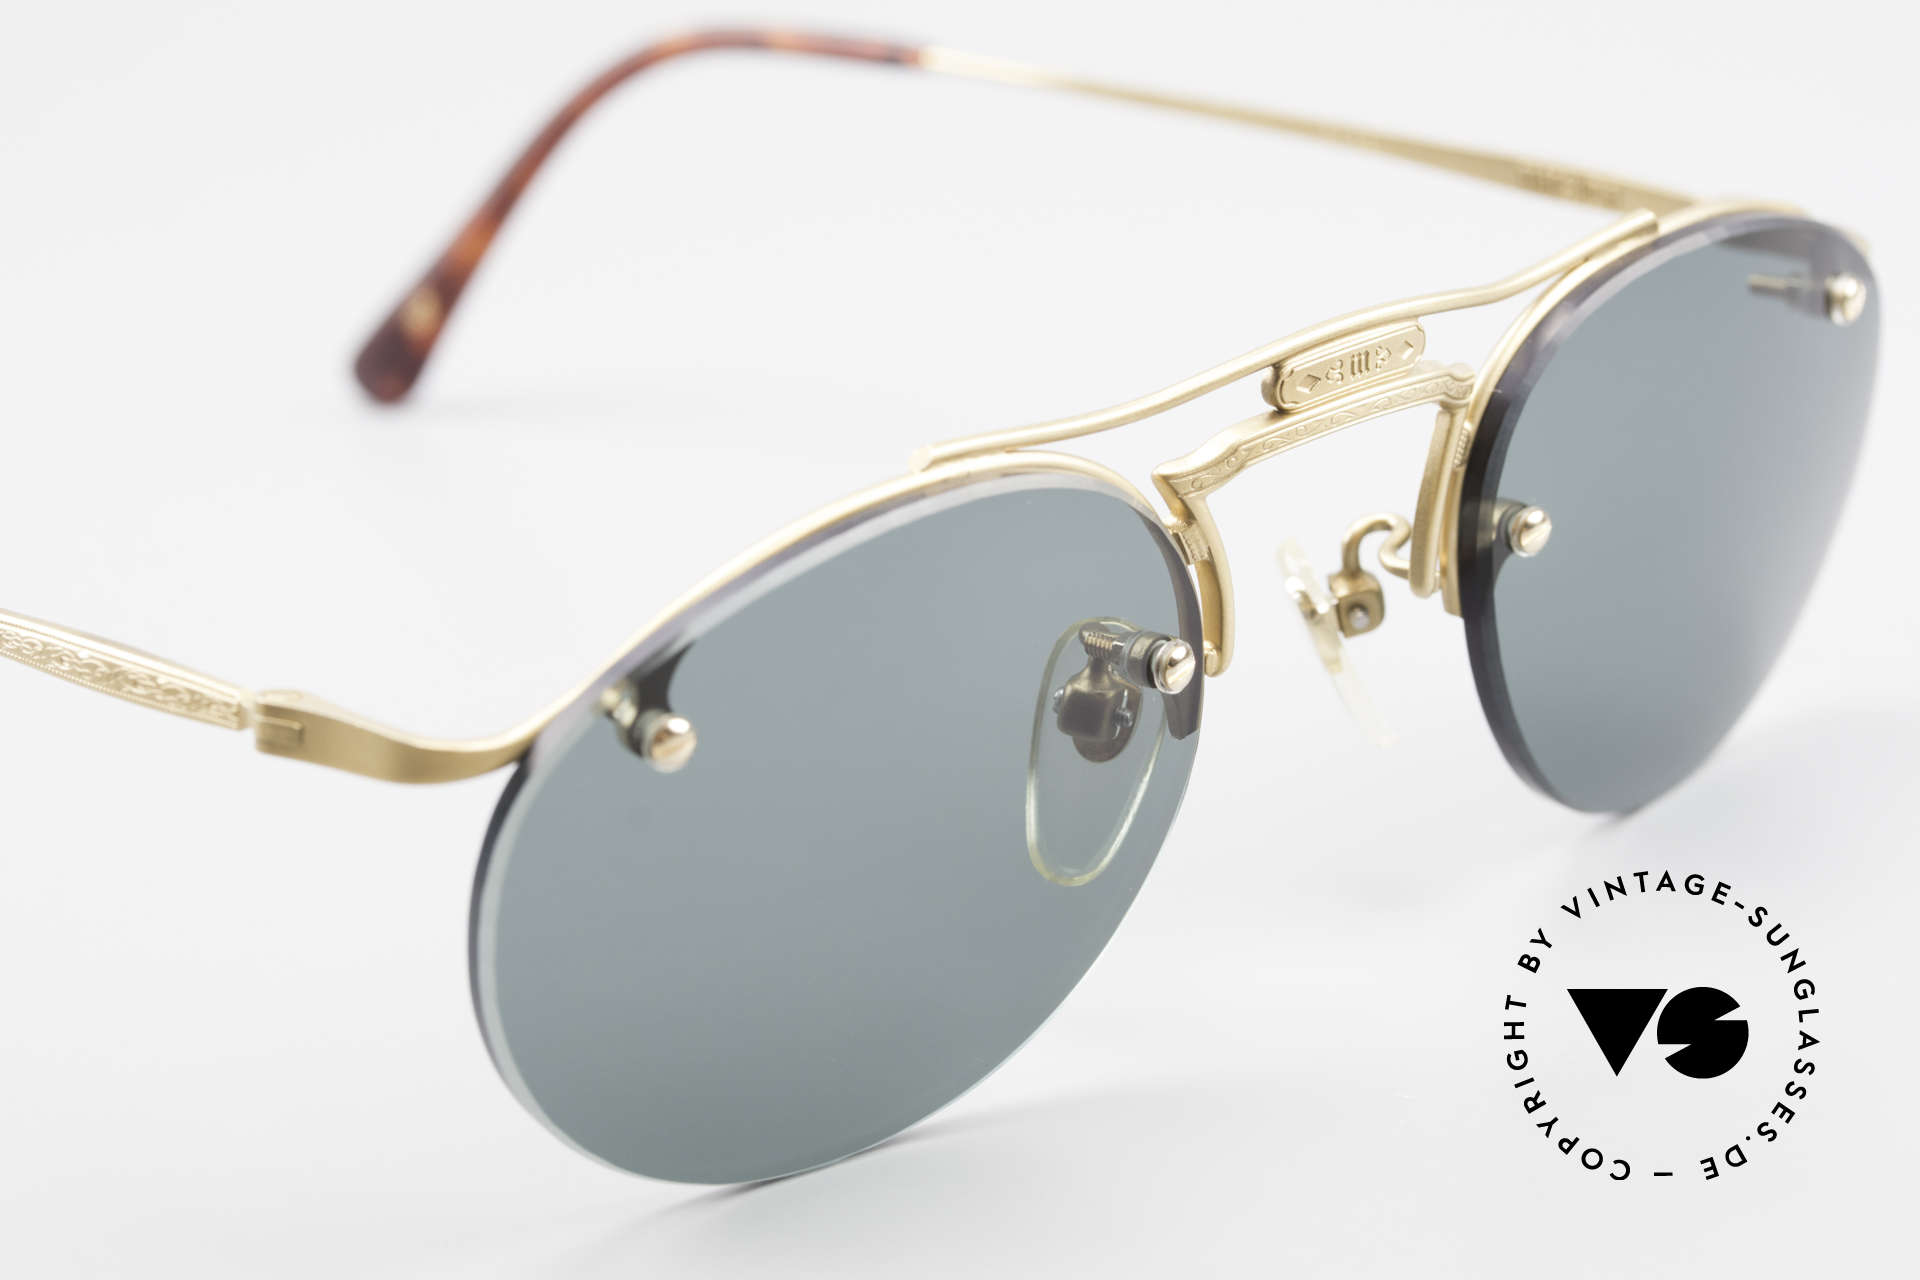 Matsuda 2823 Small Aviator Style Shades, NO retro sunglasses, but a 25 years old ORIGINAL, vertu, Made for Men and Women